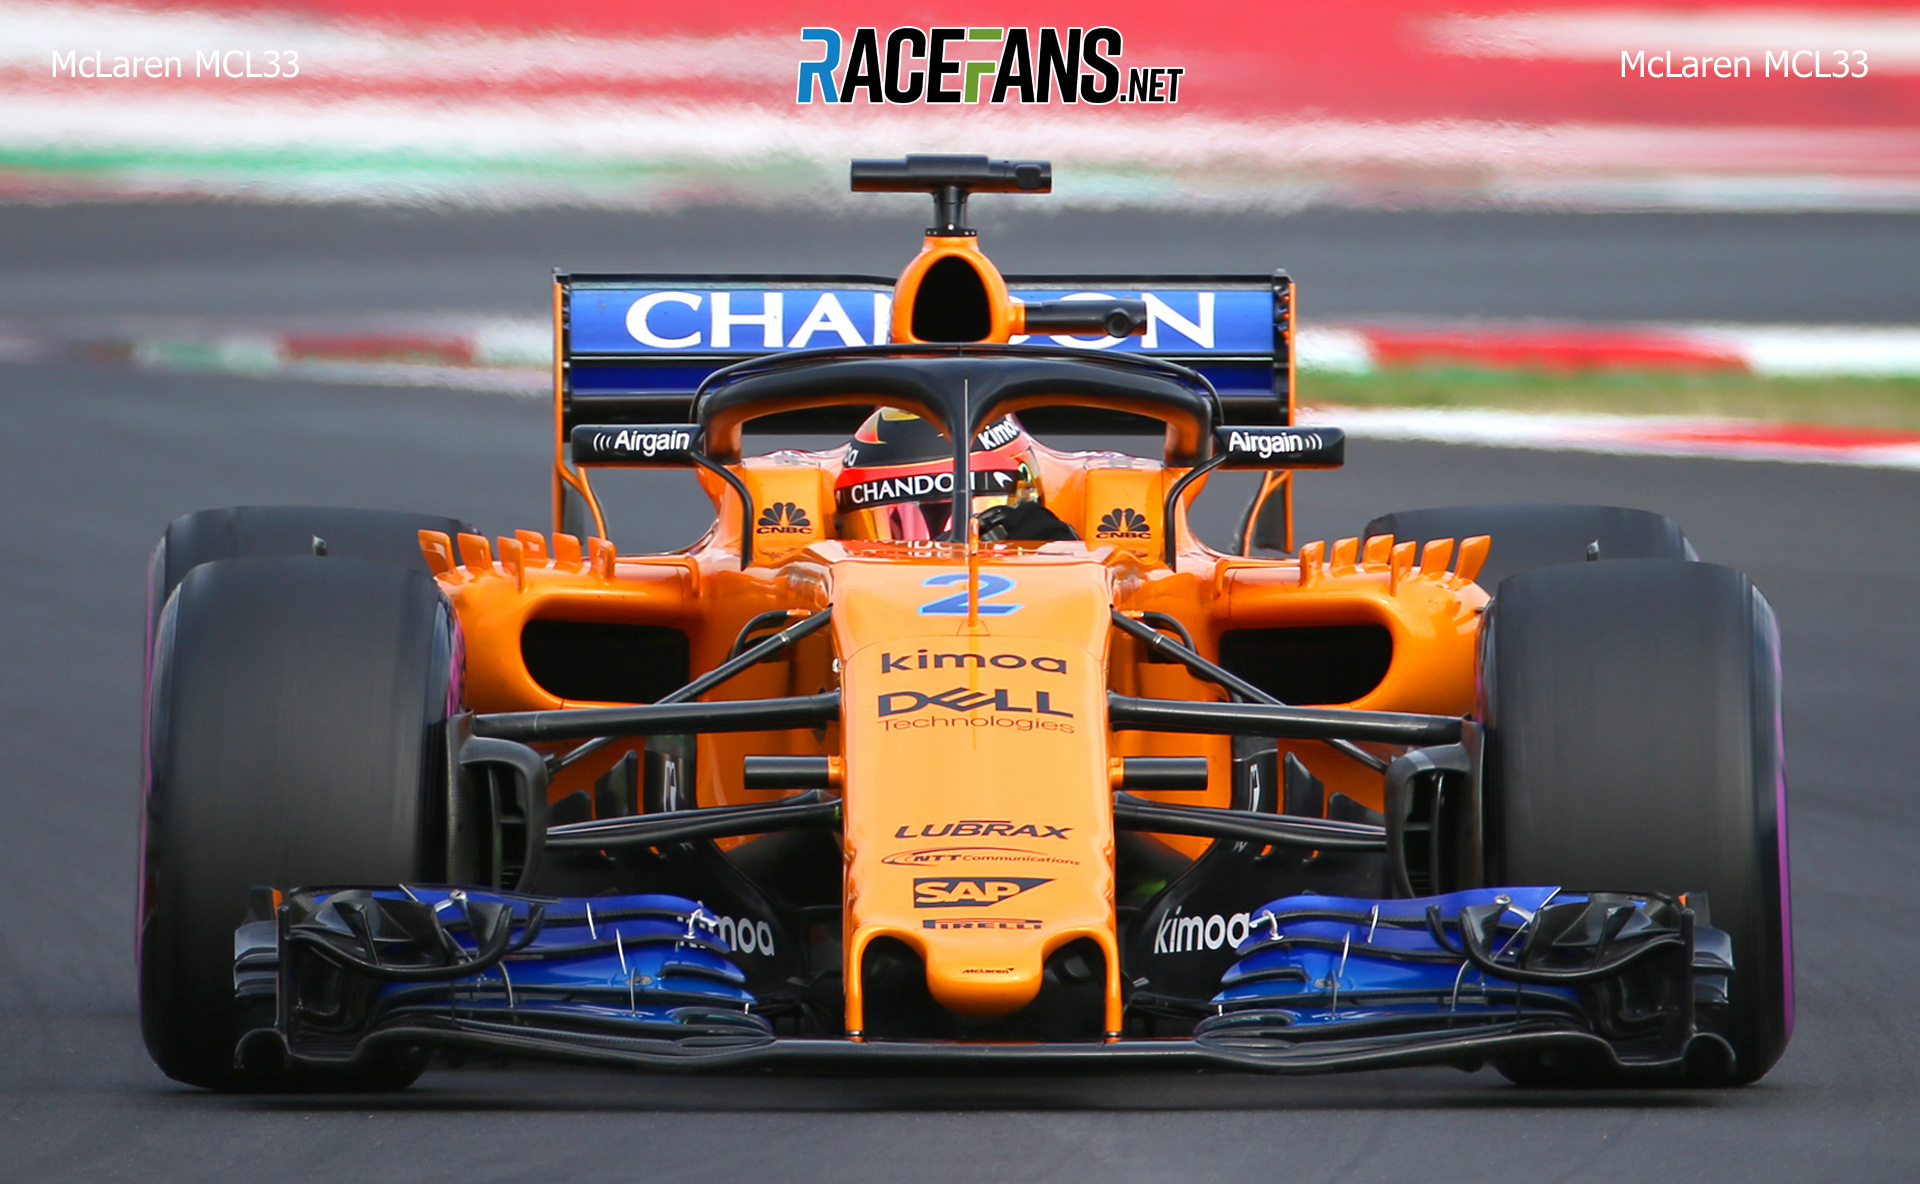 Interactive: Compare all 10 F1 cars on the 2018 grid - RaceFans